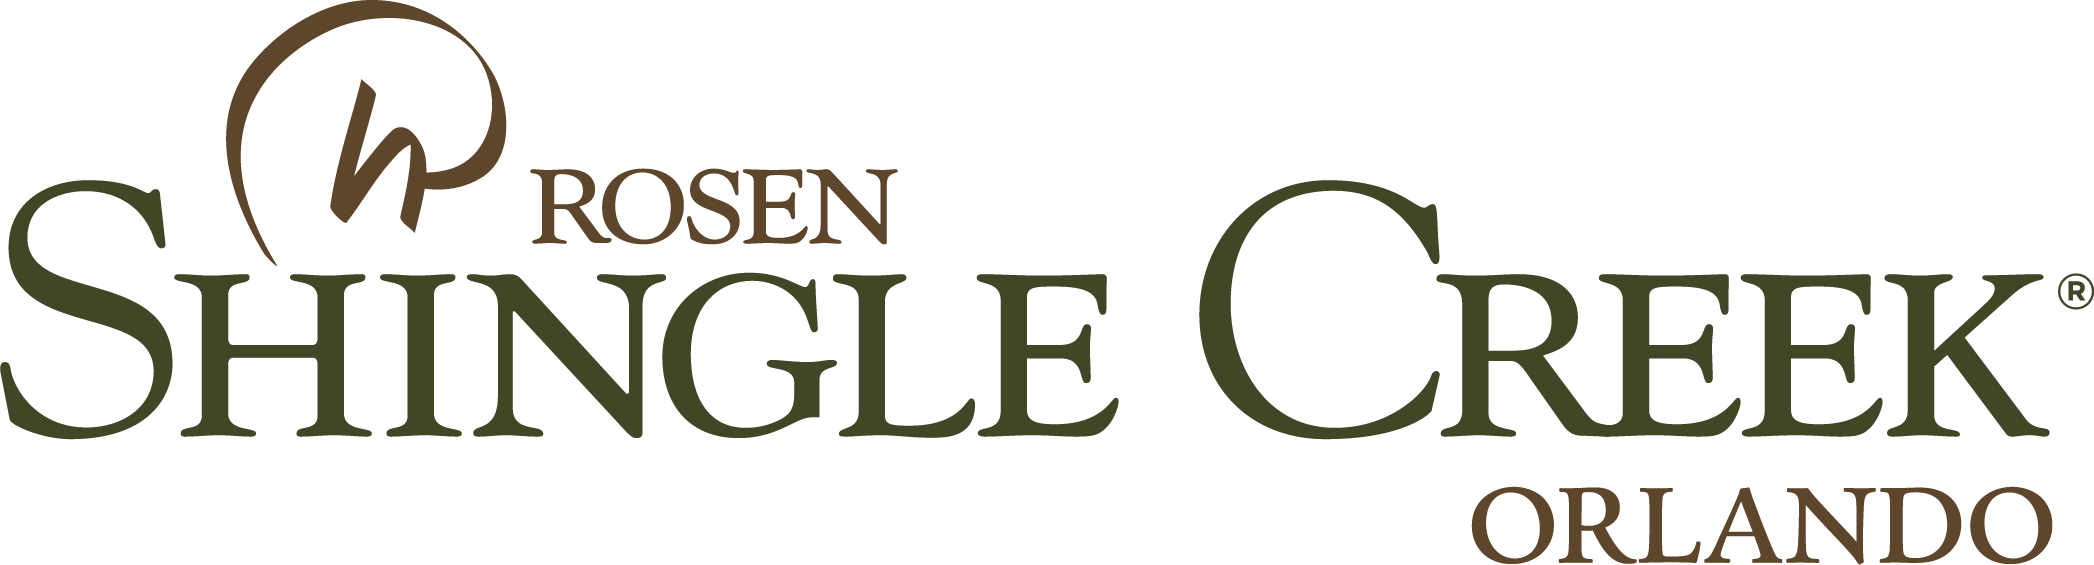 Rosen Shingle Creek Orlando Logo (2C)